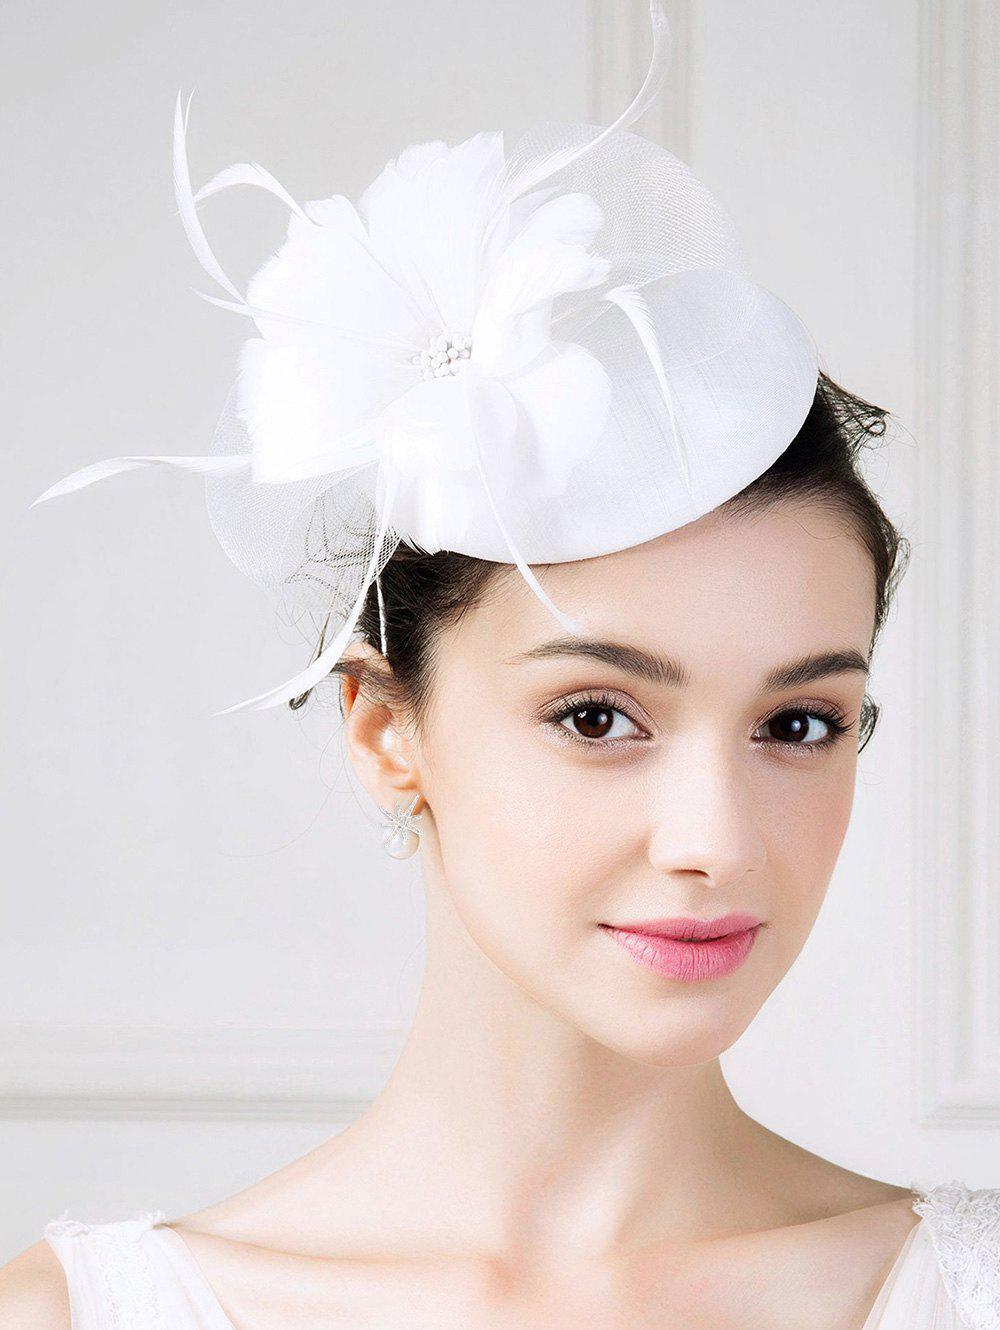 Fascinator Flower Embellished Pillbox Hat jxd rc mini drone with camera hd wifi live camera helicopter radio control tiny quadcopter headless mode remote contol toy